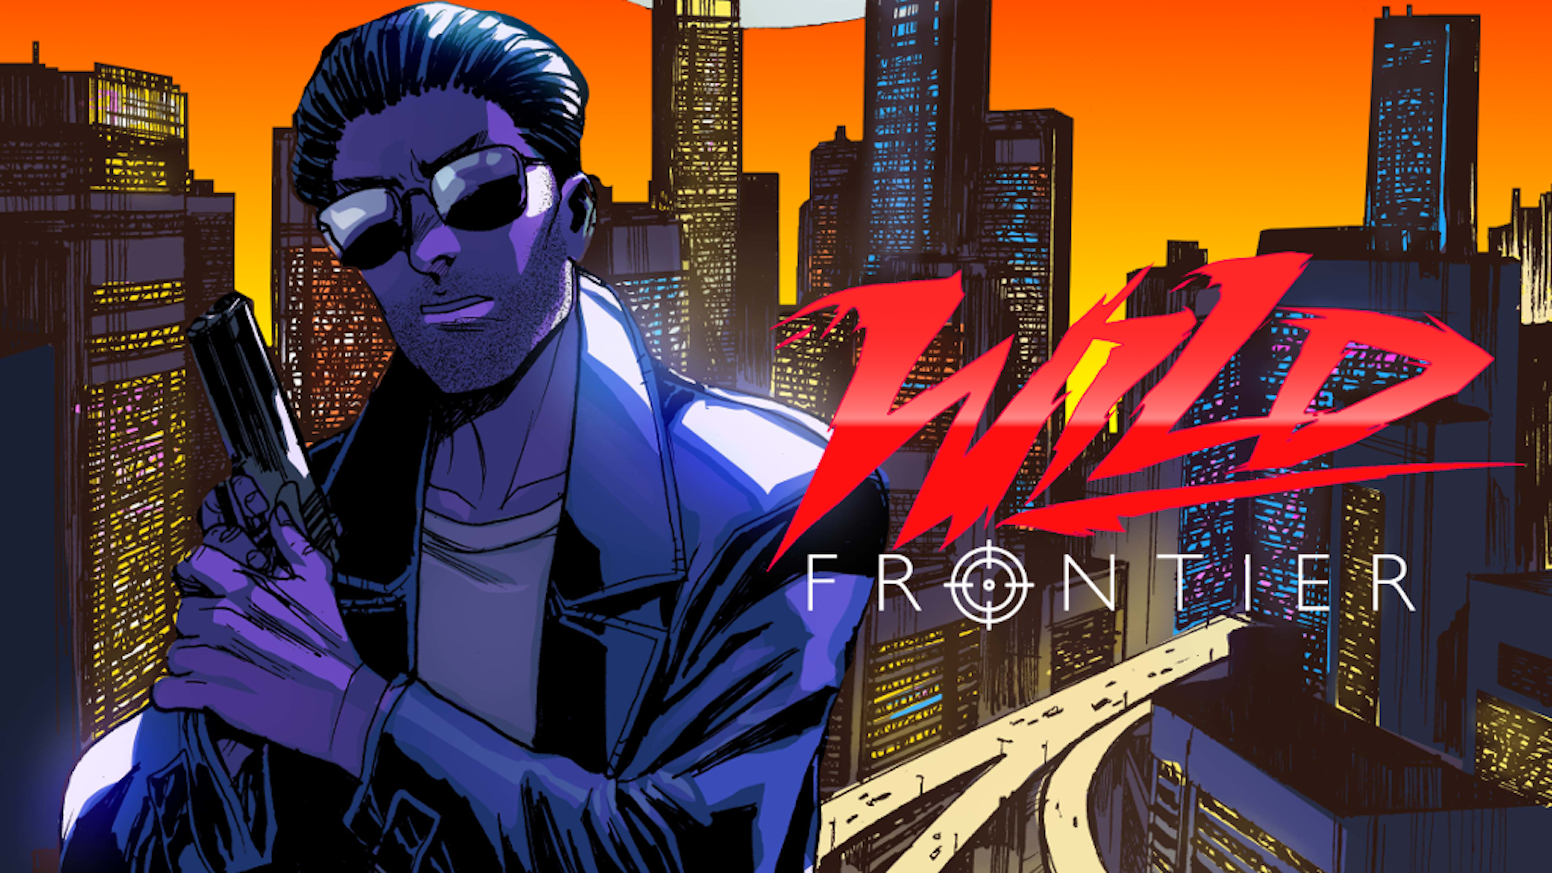 New cyberpunk comic book about a rookie agent chasing a brutal serial killer!